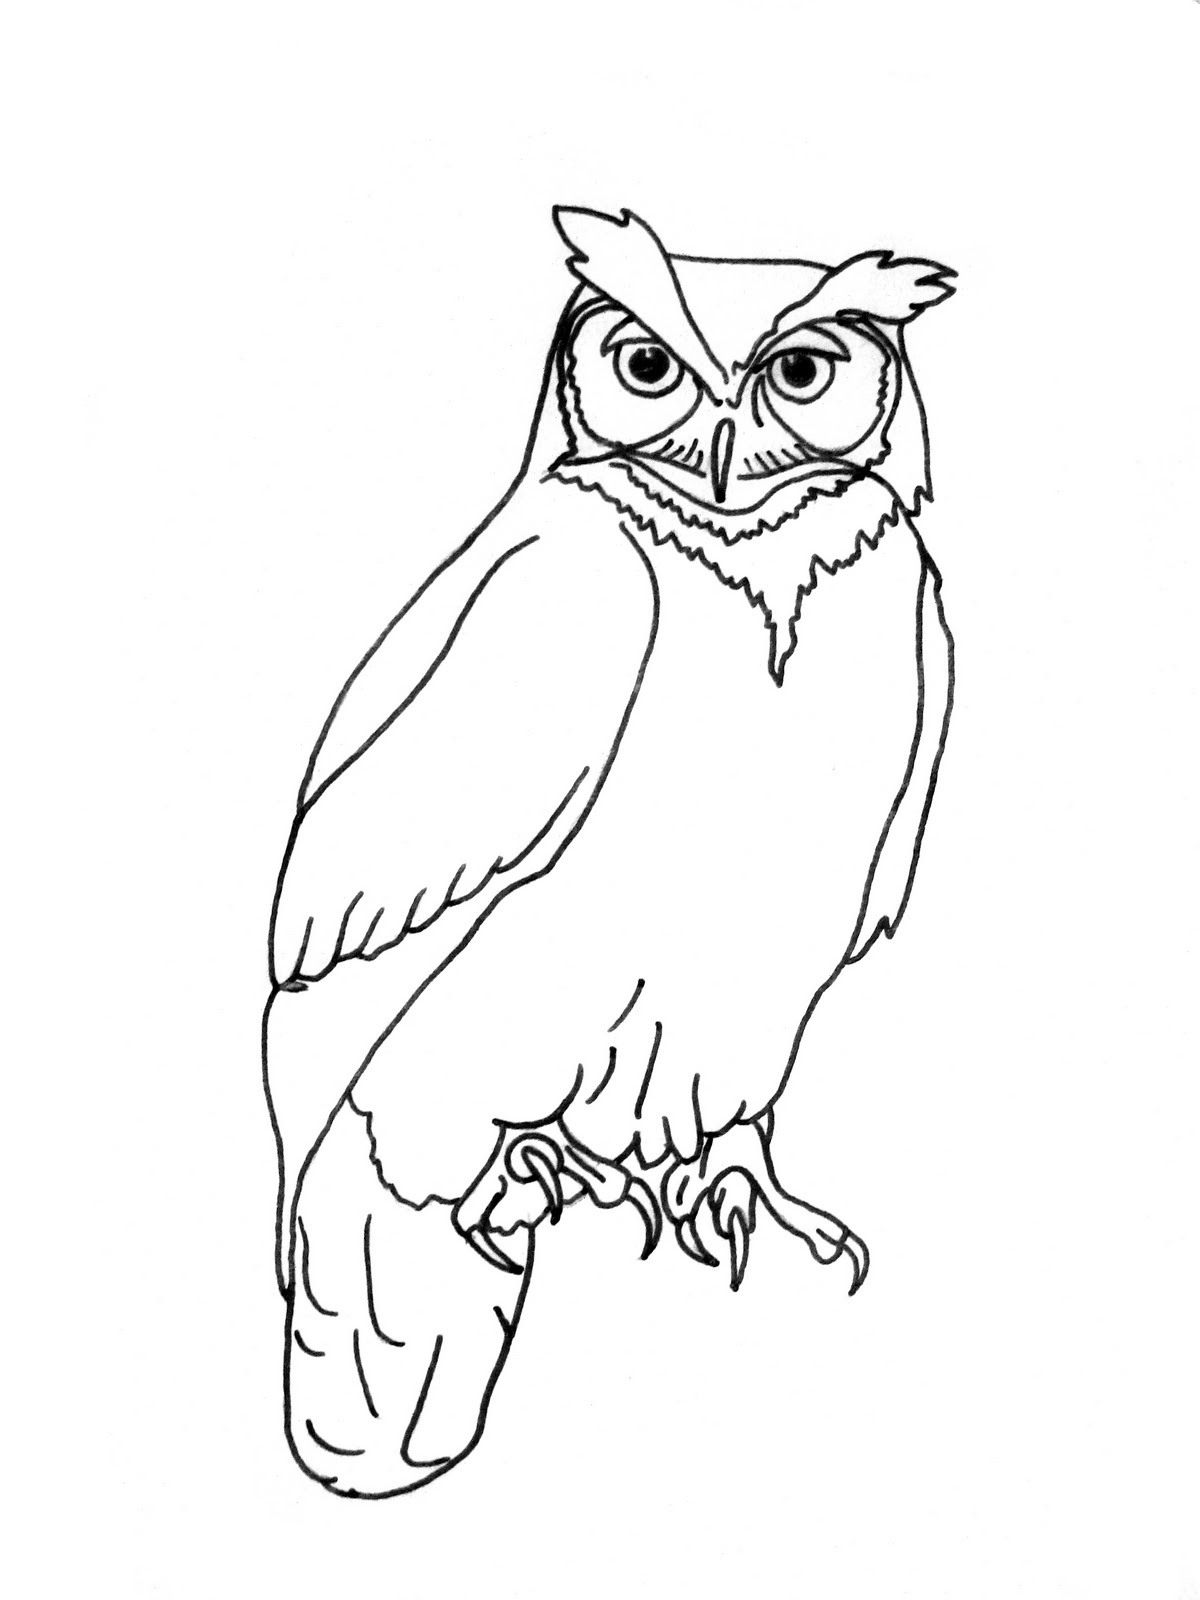 Outline Drawing Of Owl at GetDrawings | Free download